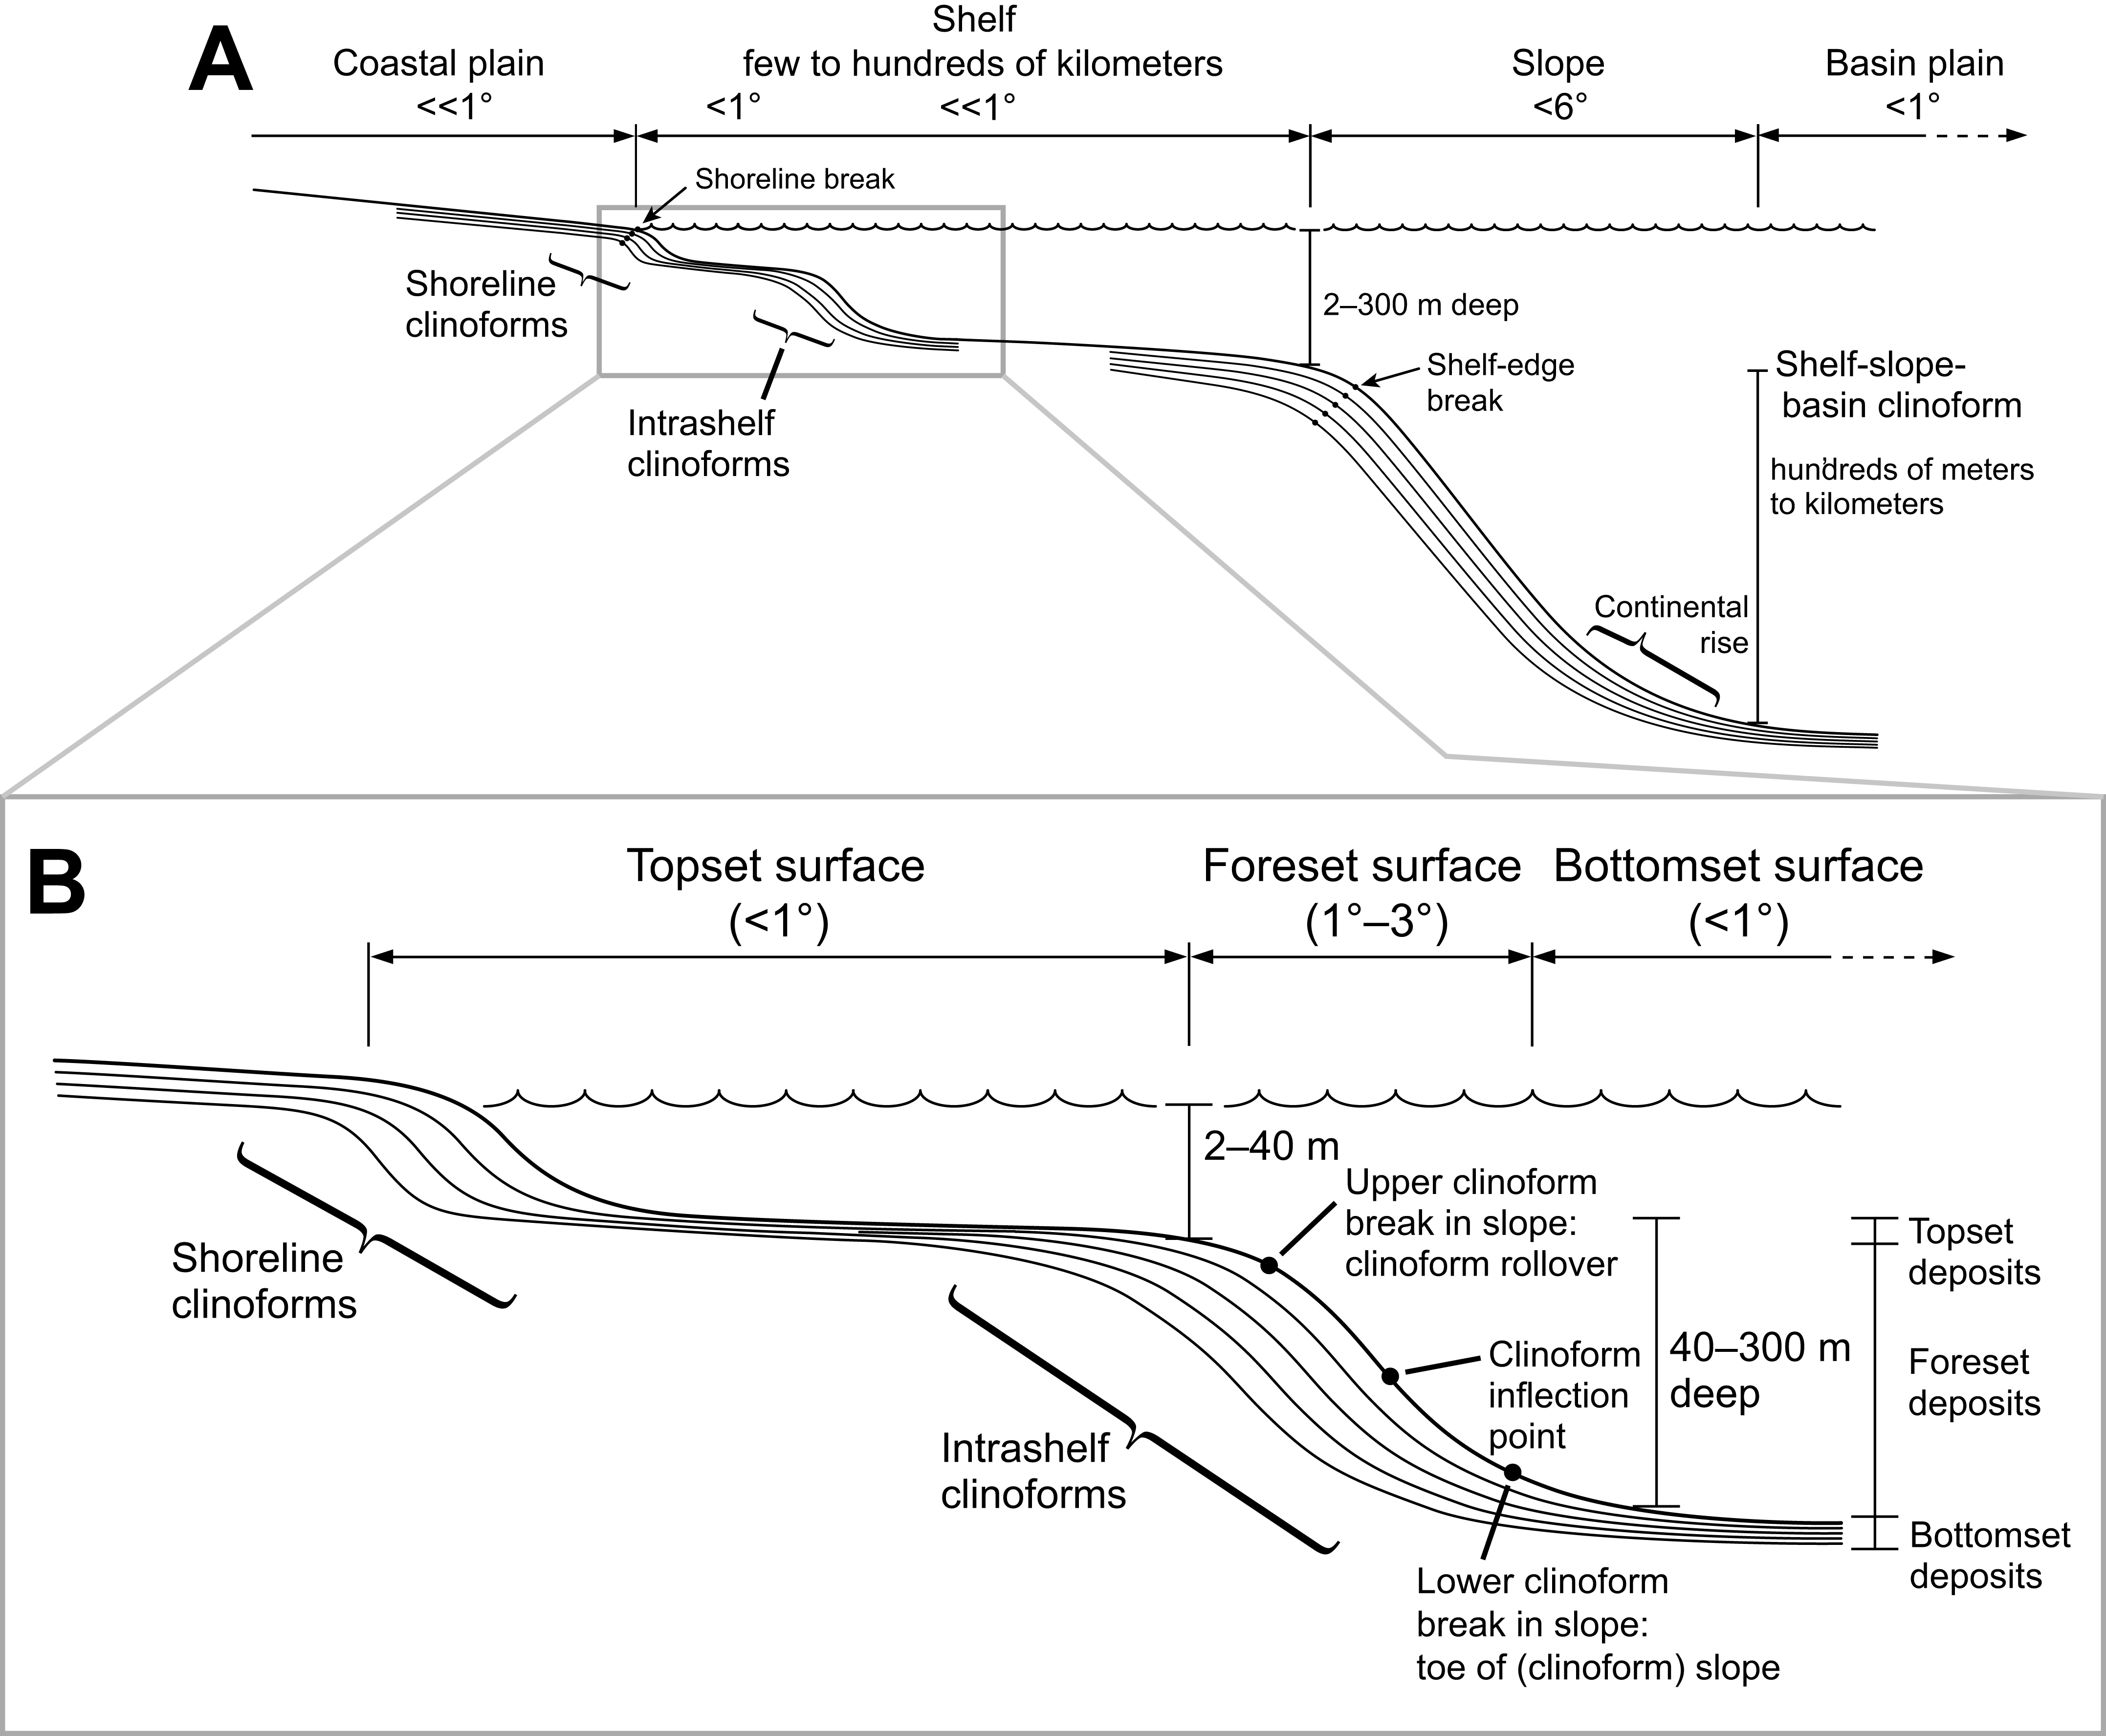 Sedimentology Stratigraphic Context And Implications Of Miocene 2003 Gulf Stream Motorhome Wiring Diagram View Largedownload Slide